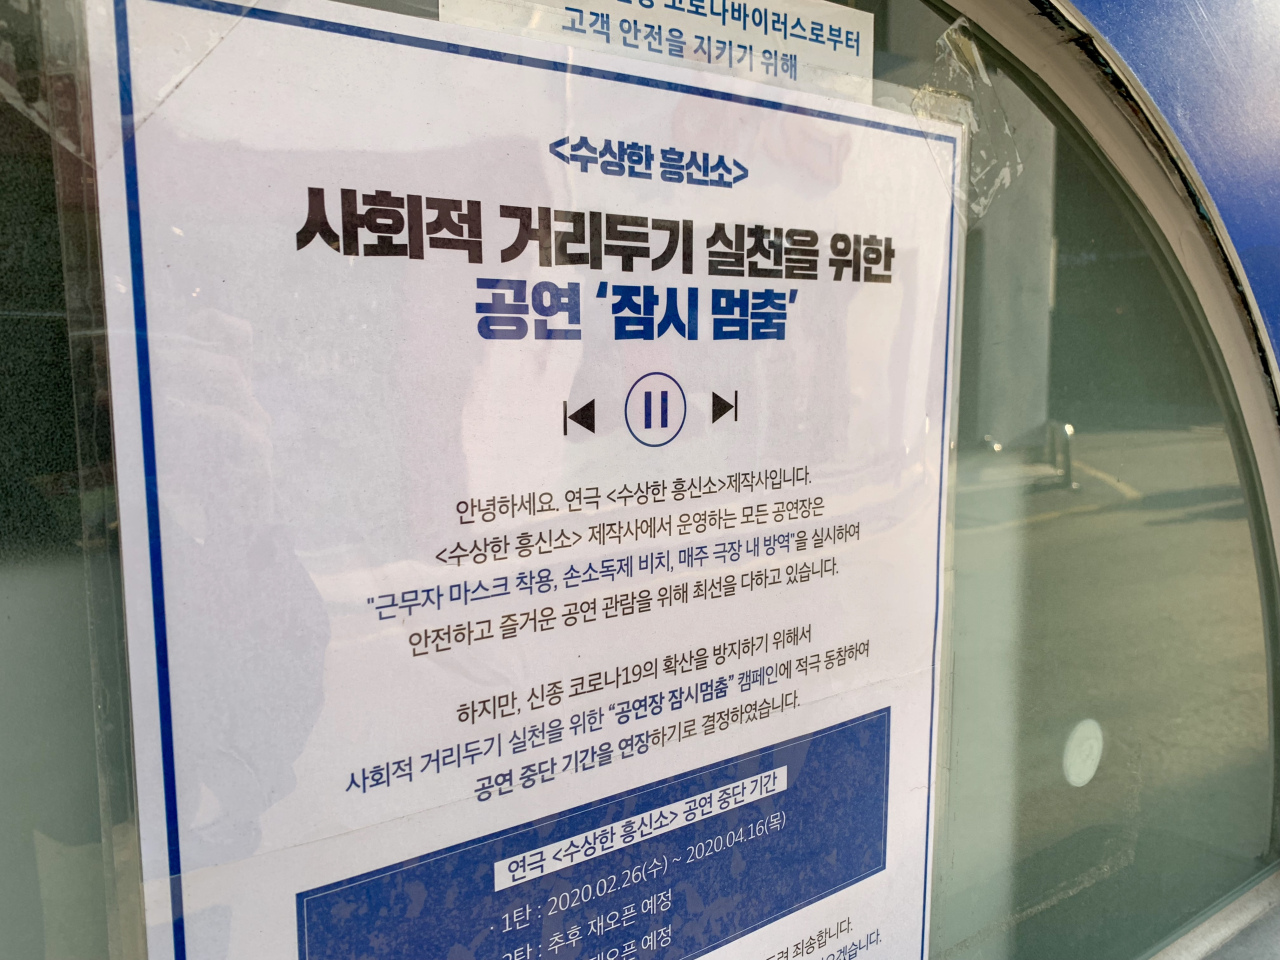 Some popular plays in Daehangno have shut down in compliance with the government's social distancing guidelines. (Im Eun-byel/The Korea Herald)